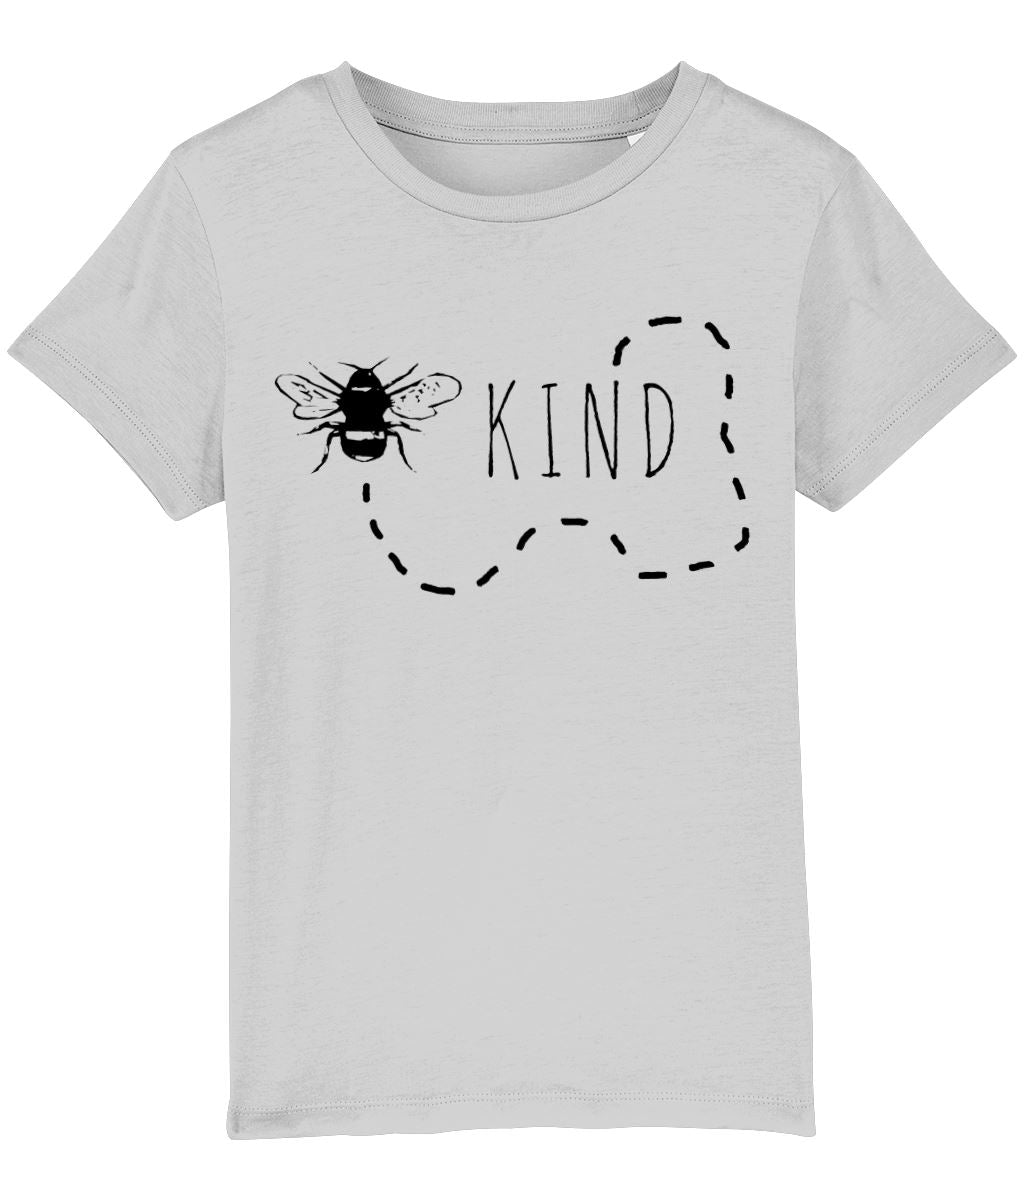 """Bee Kind"" Children's Vegan T-Shirt (Unisex) Clothing Vegan Original Heather Grey 3-4 years"